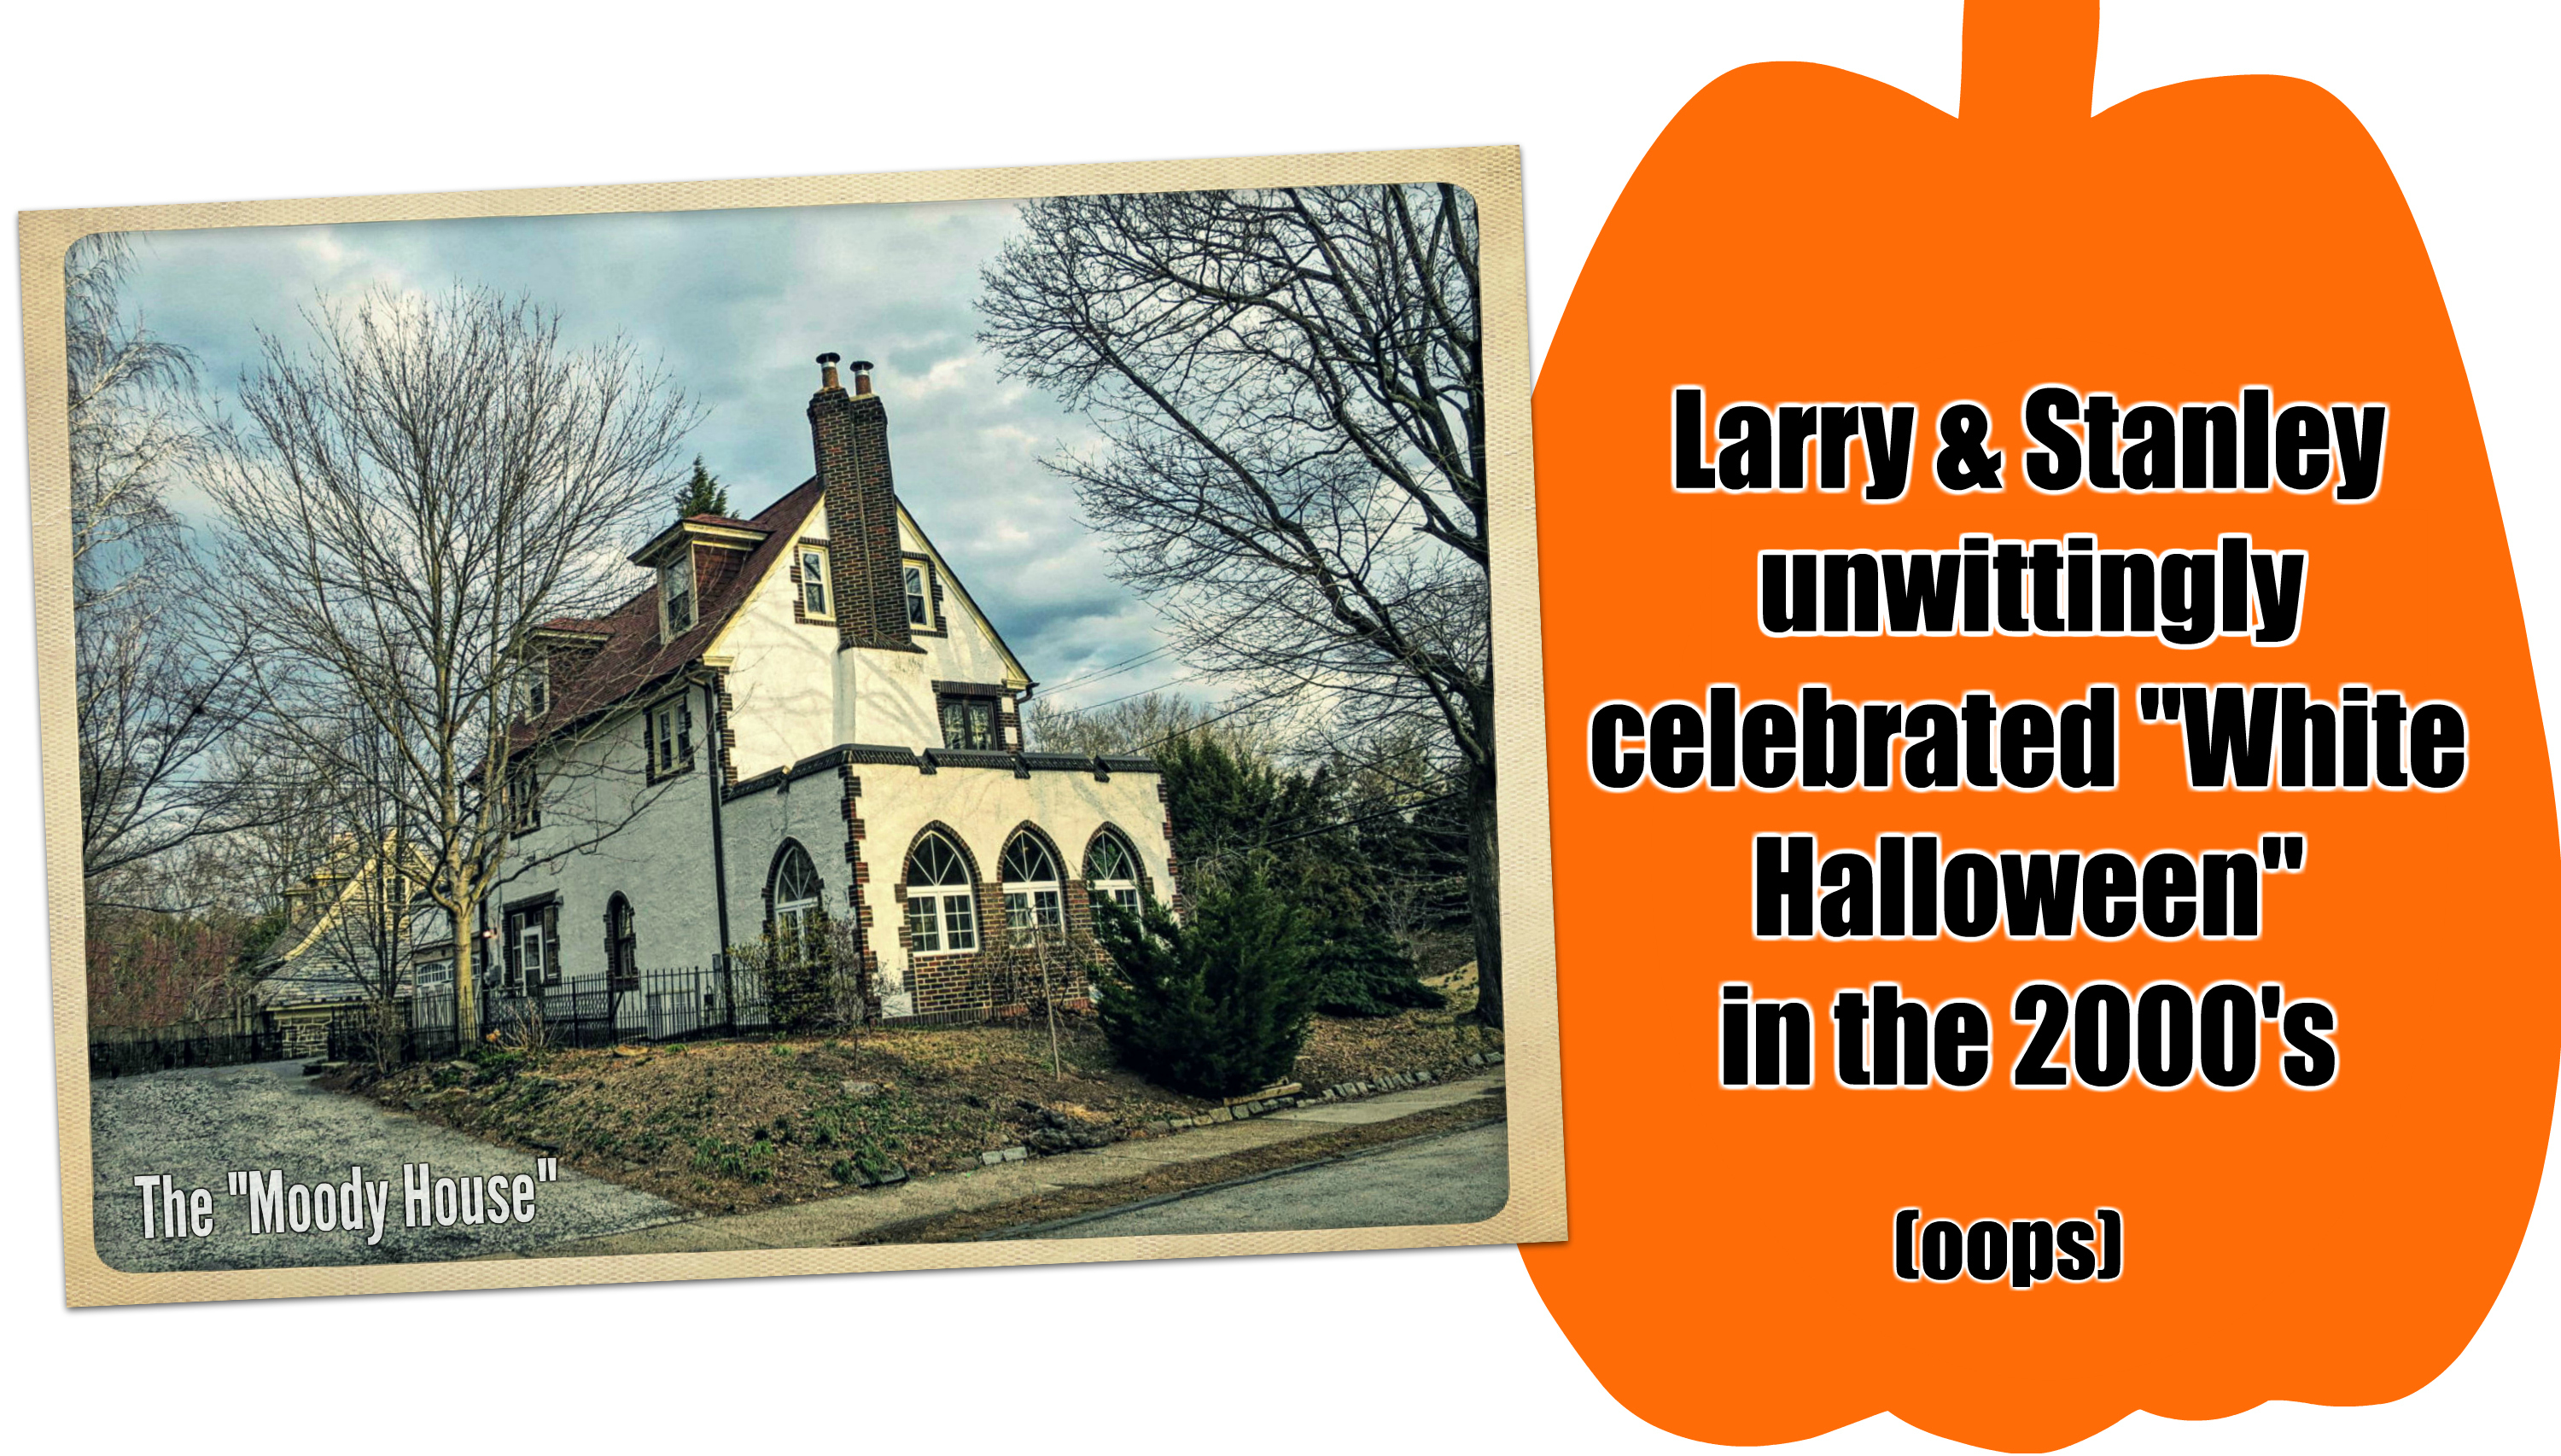 EastFallsLocal collage moody house henry ave pumkin impact text